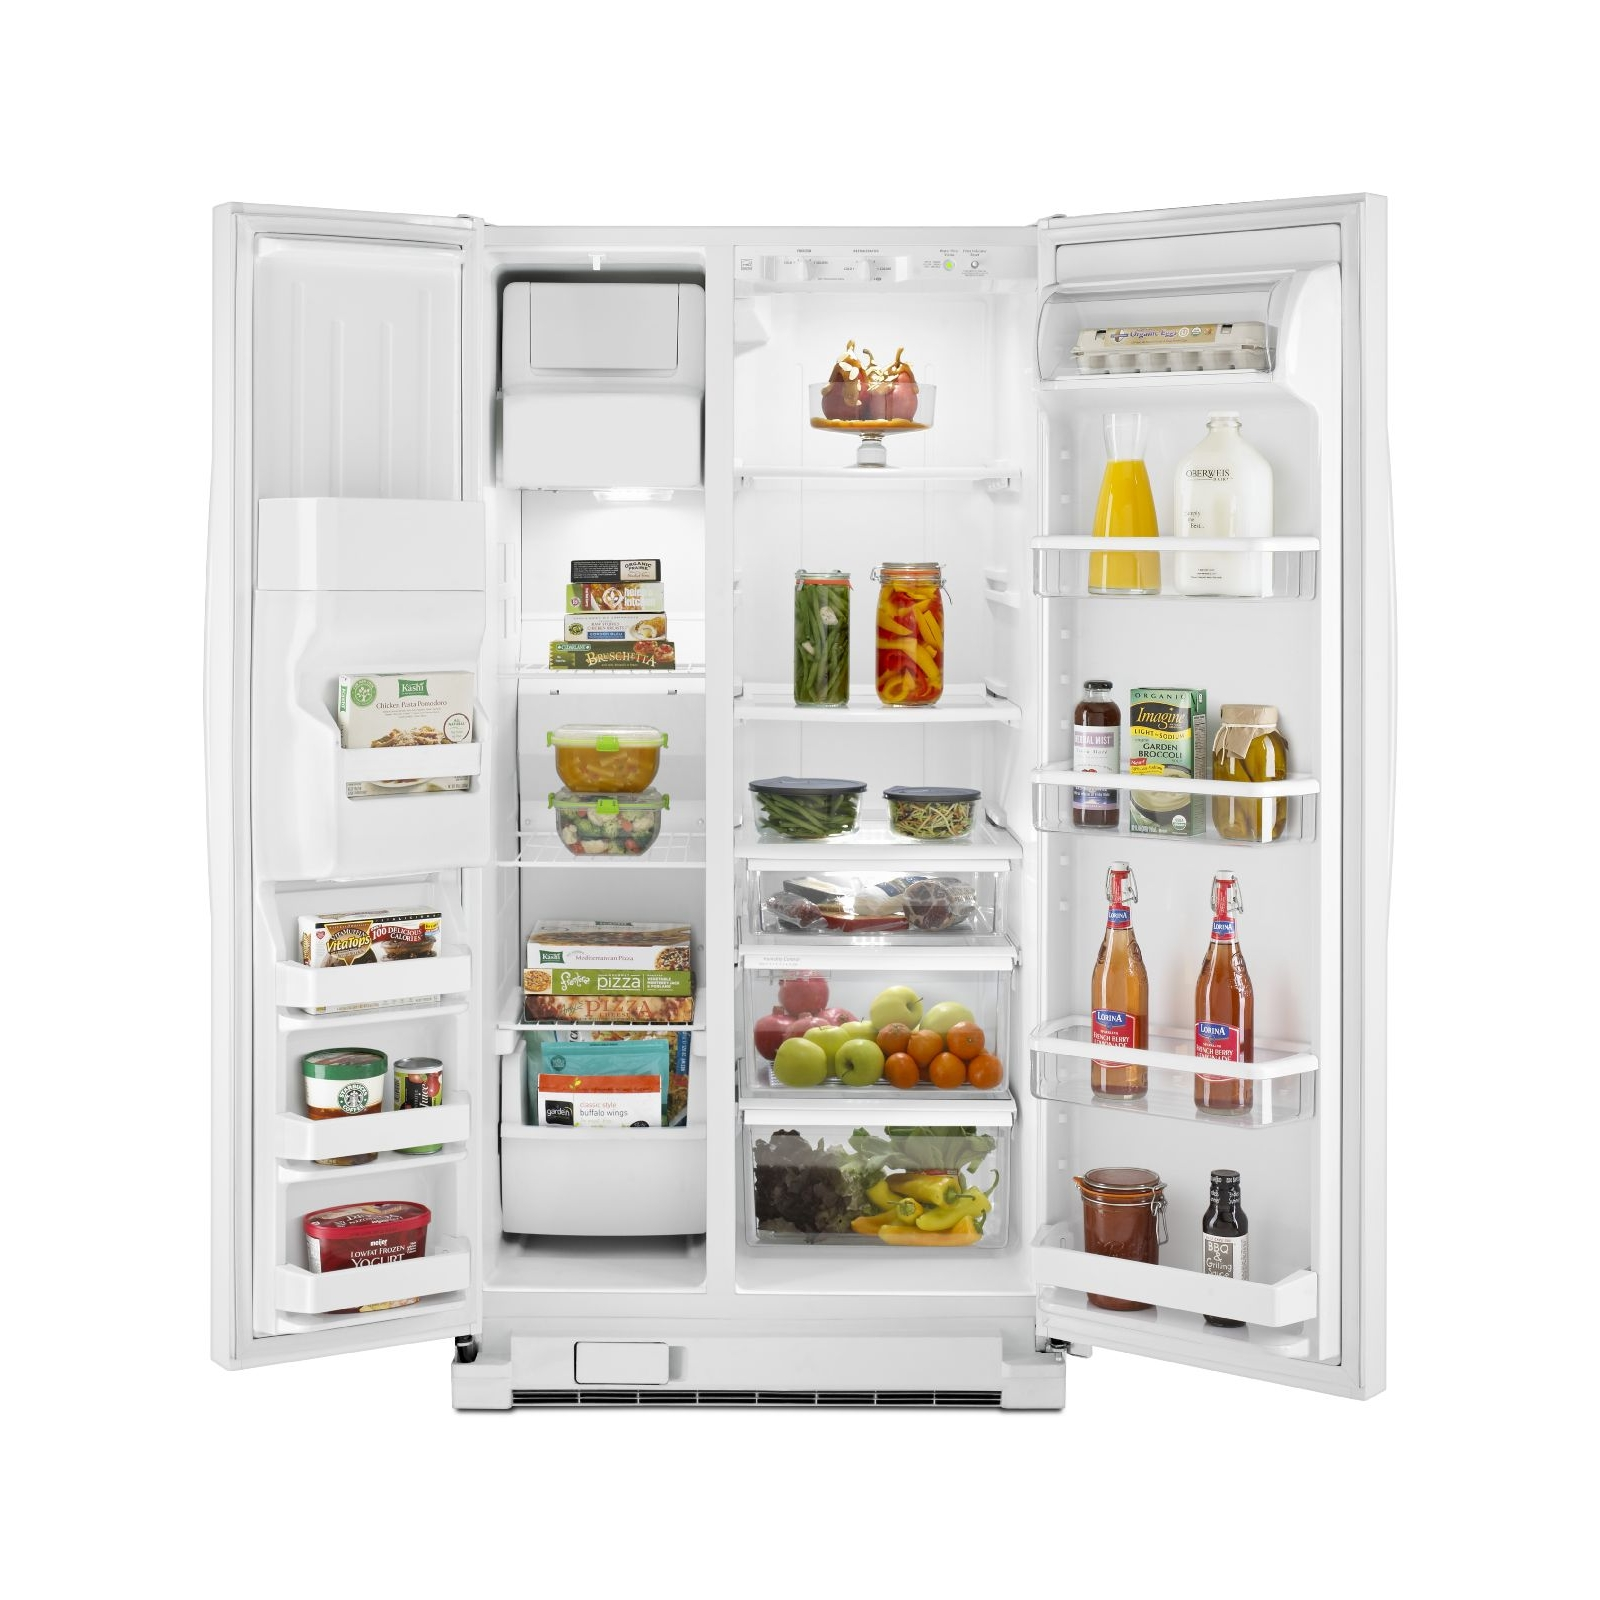 Whirlpool 25.0 cu. ft. Side-by-Side Refrigerator w/ Accu-Chill™ - White